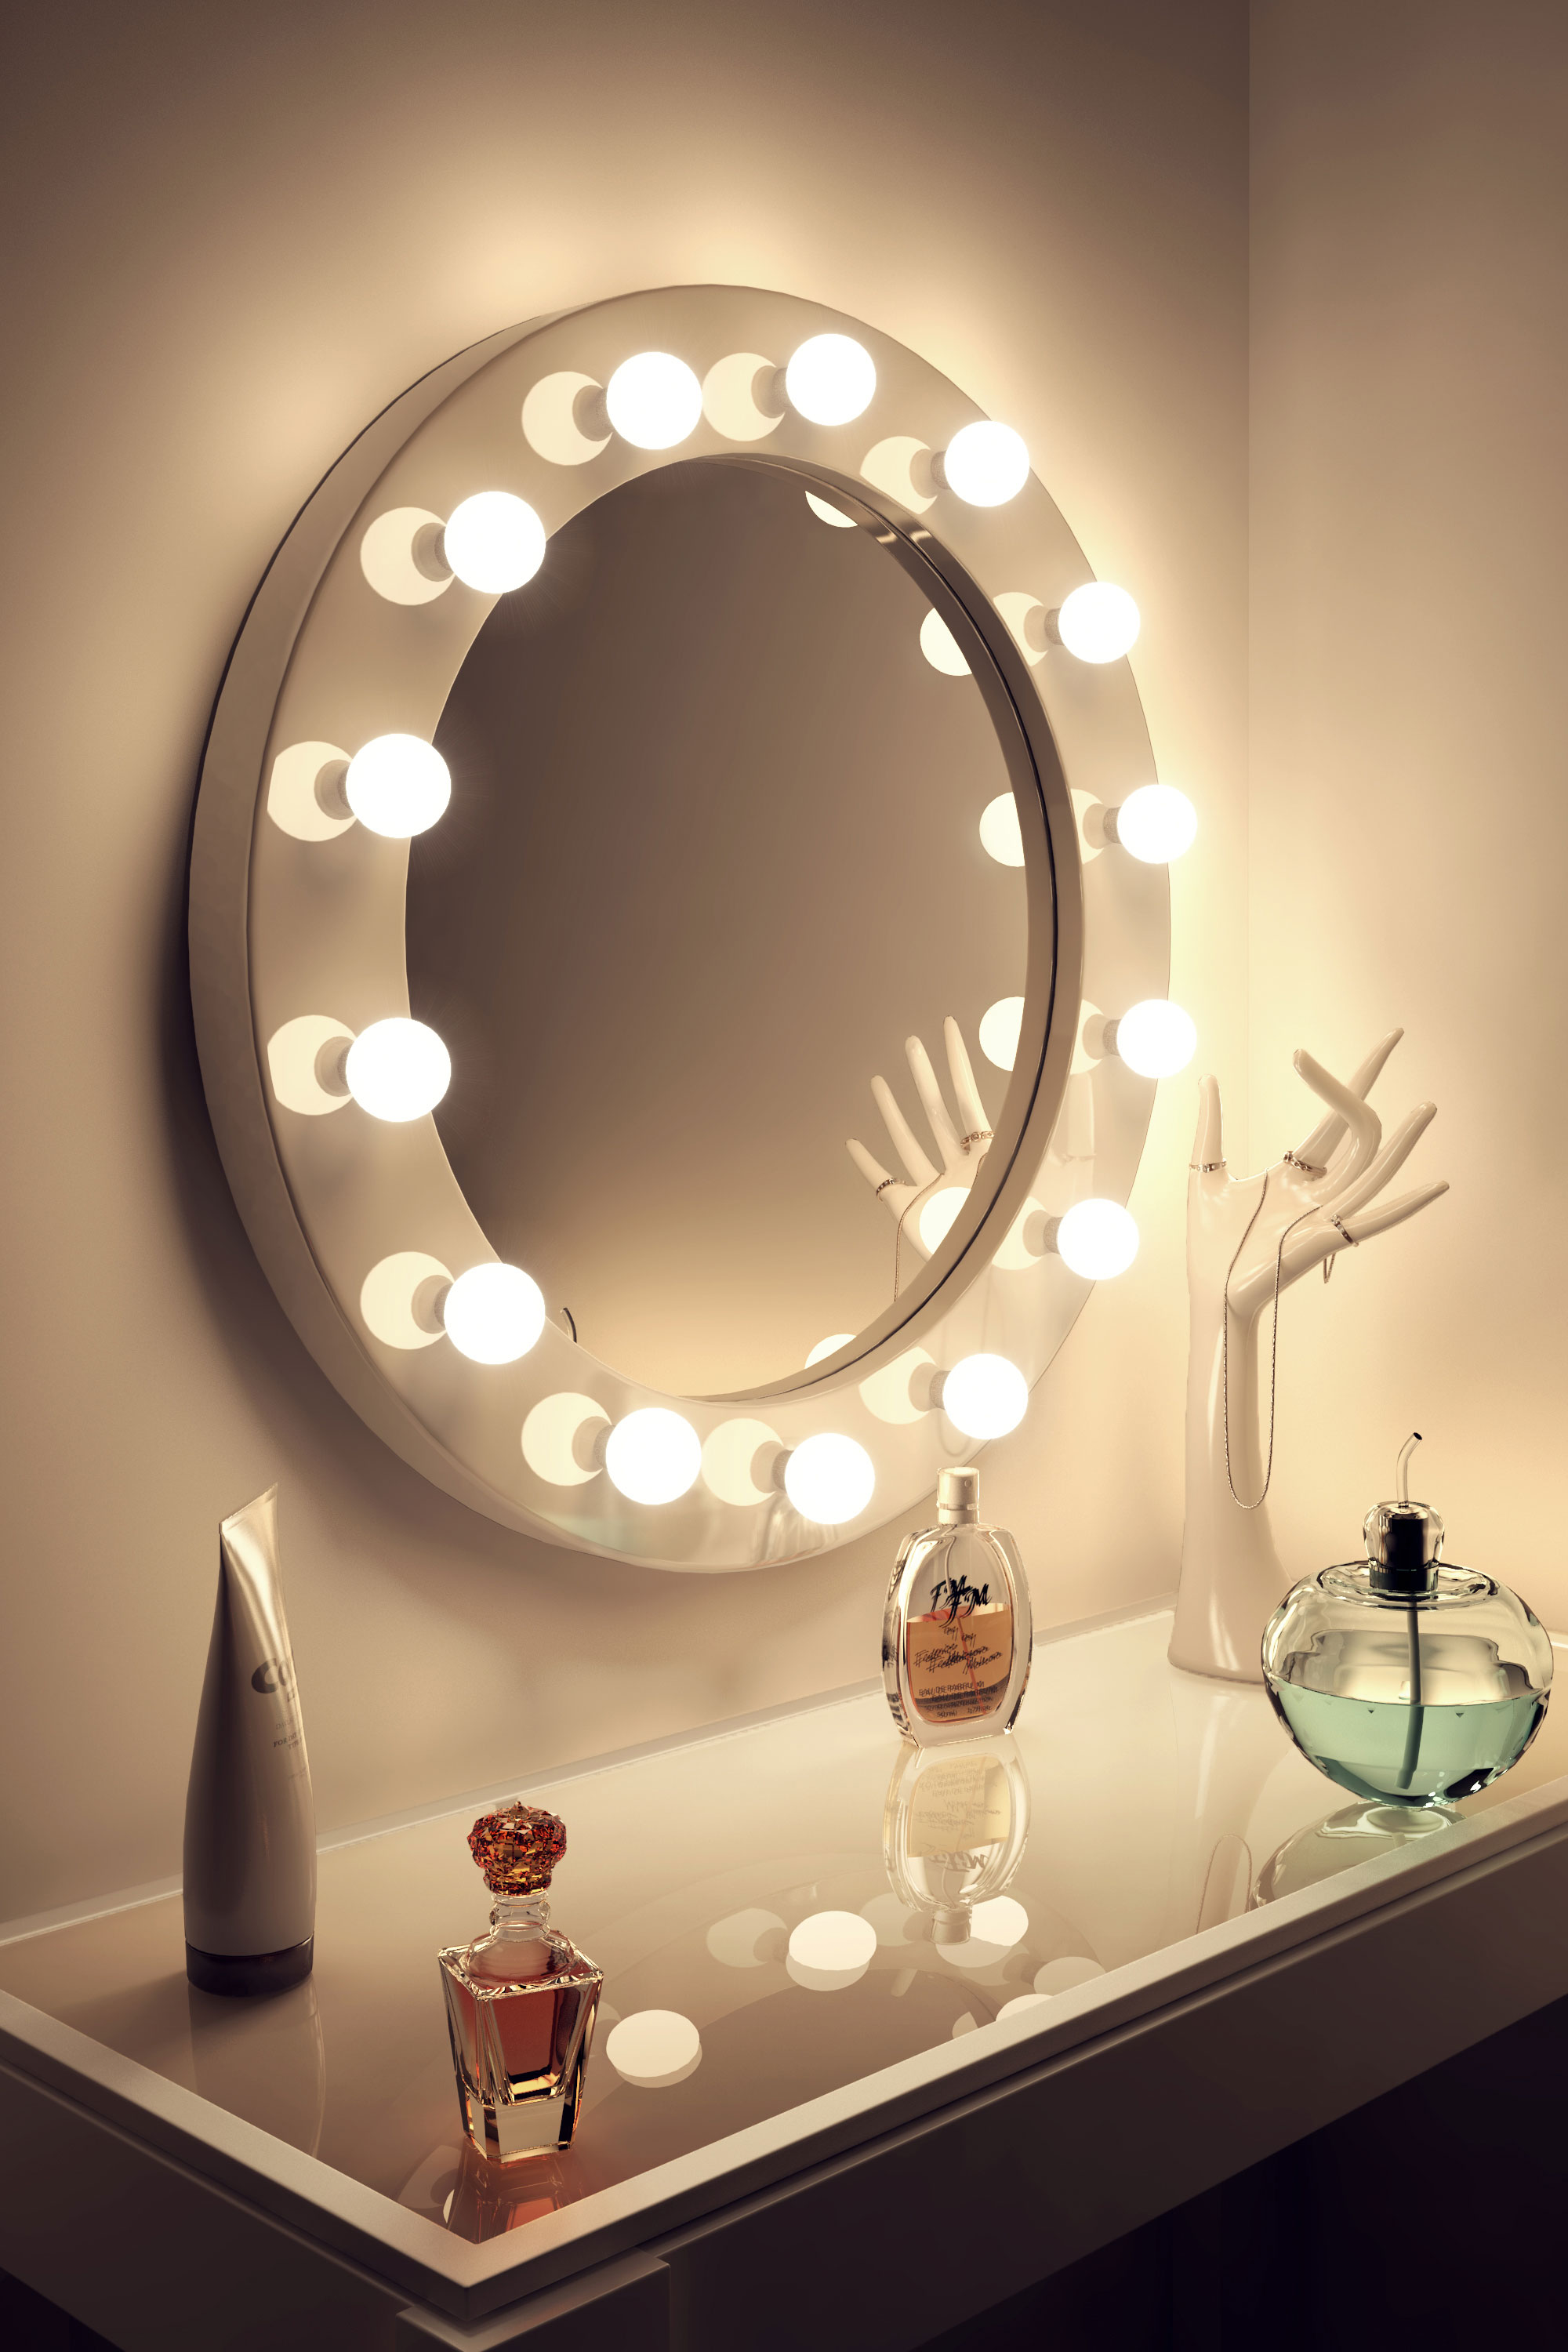 high gloss white round hollywood makeup mirror with dimmable lamps k246 ebay. Black Bedroom Furniture Sets. Home Design Ideas